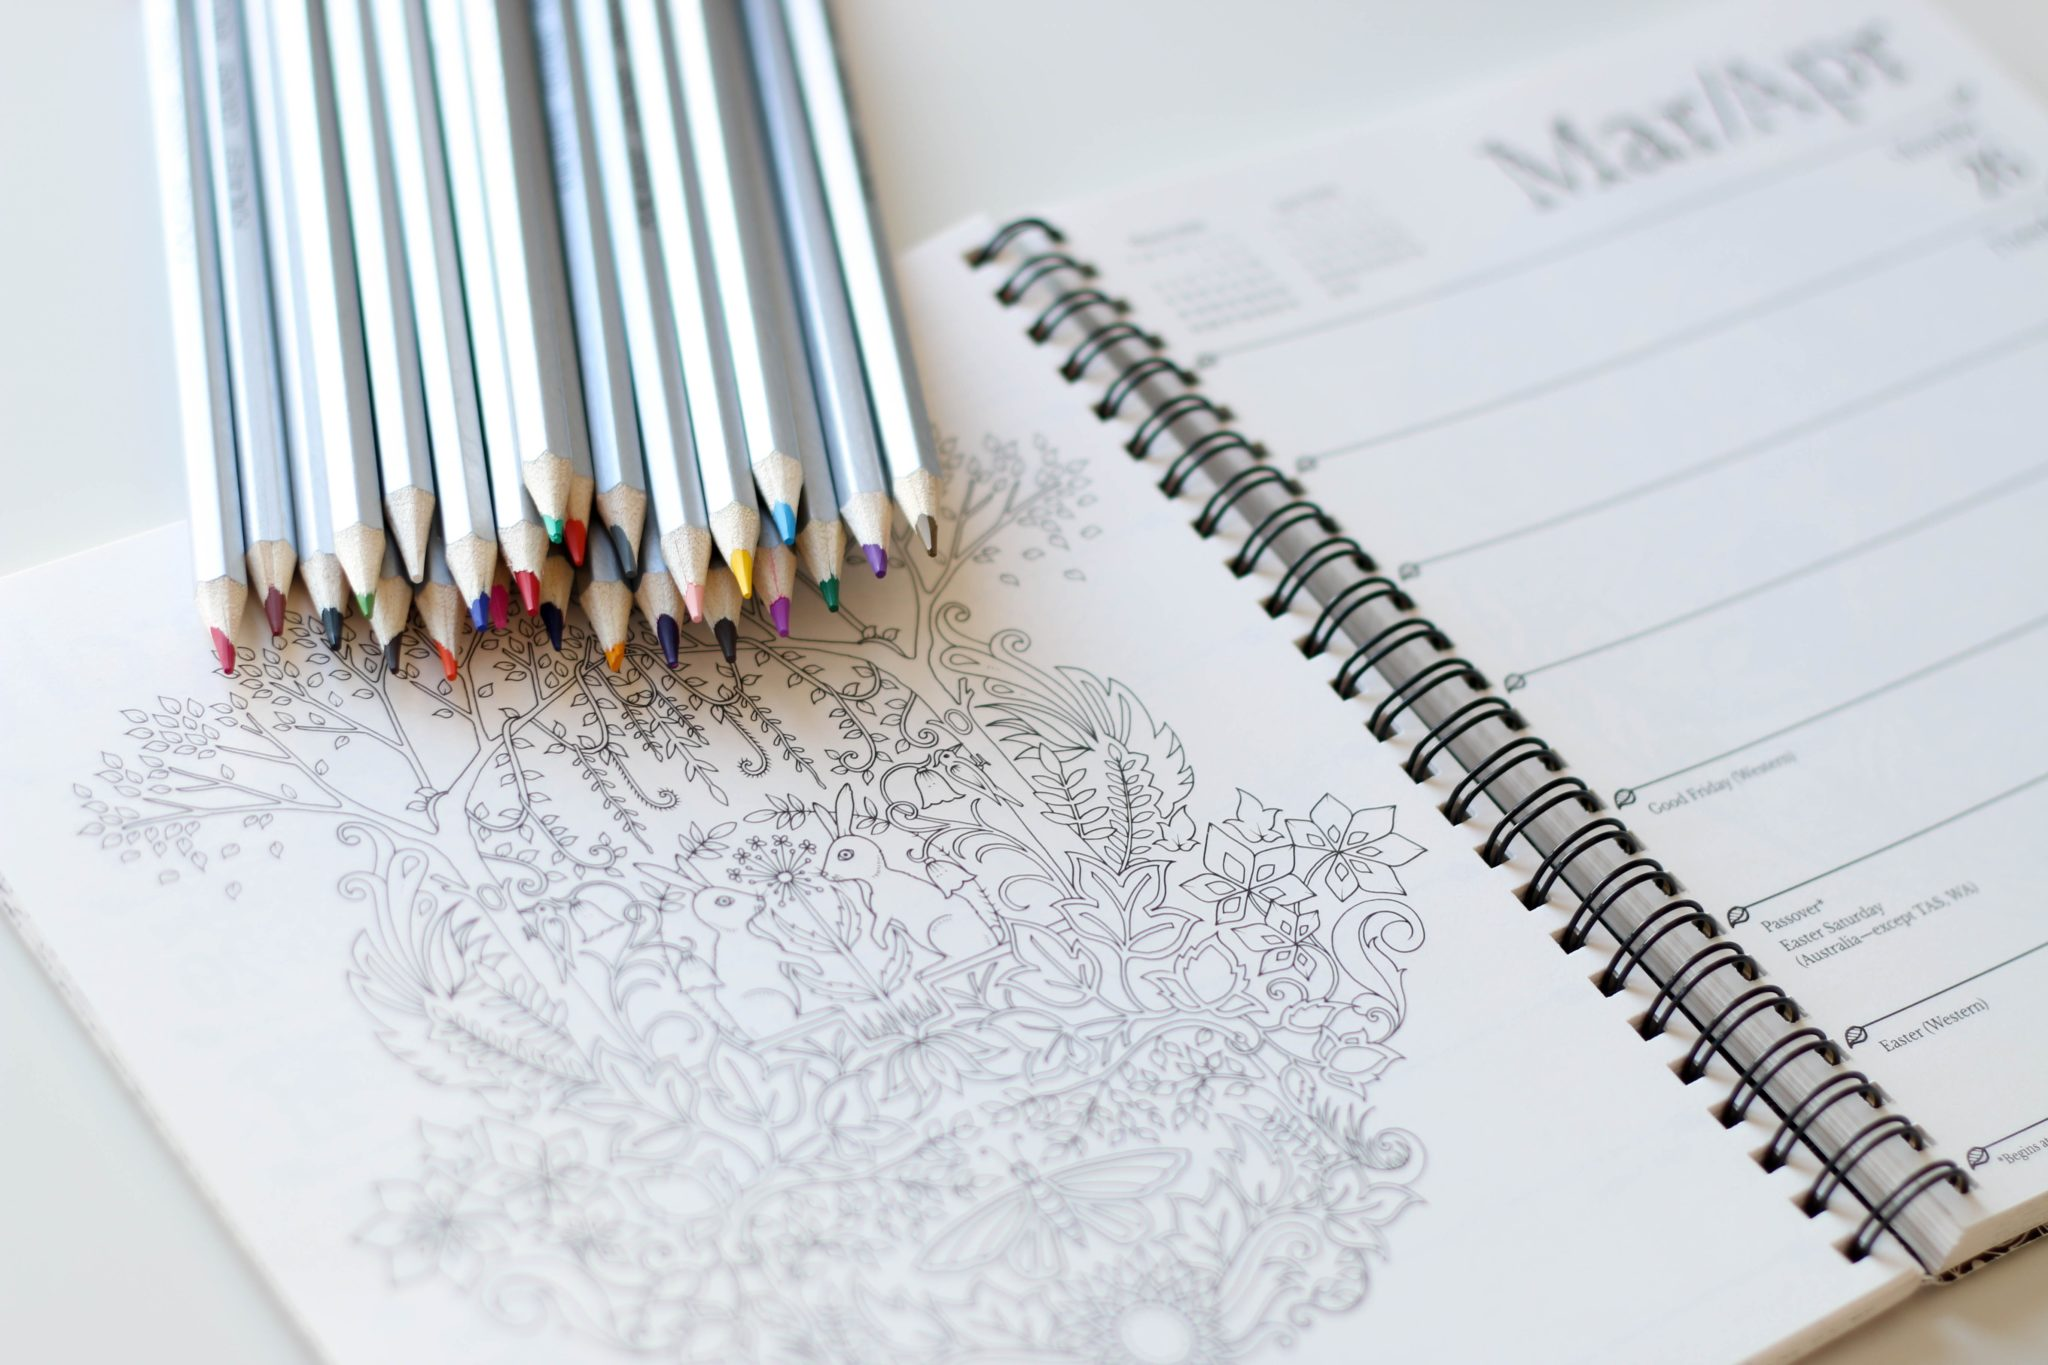 The art of mindful colouring